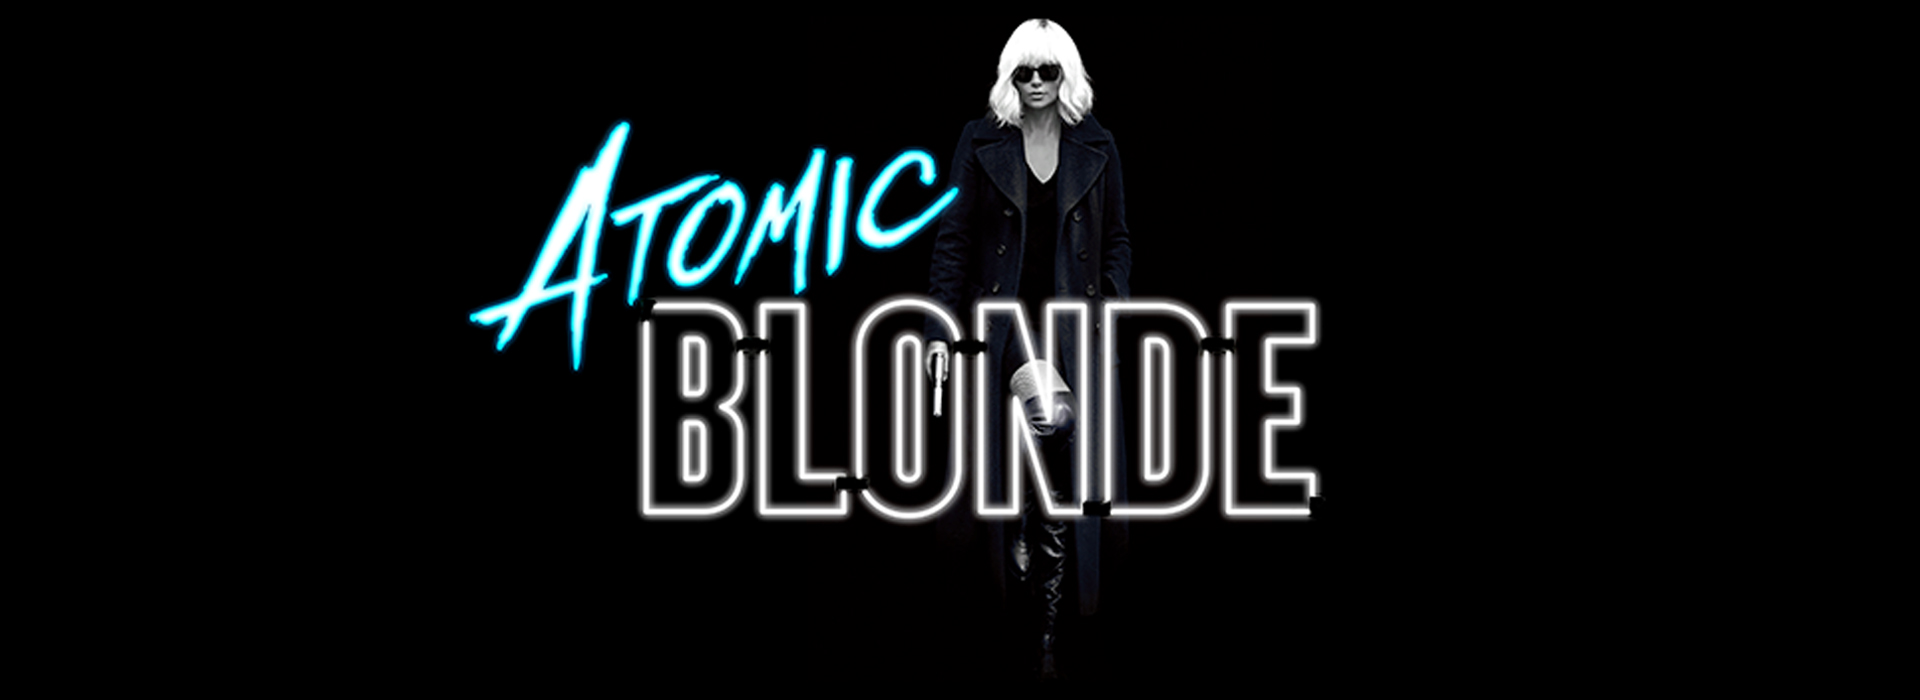 Atomic-Blonde-slide